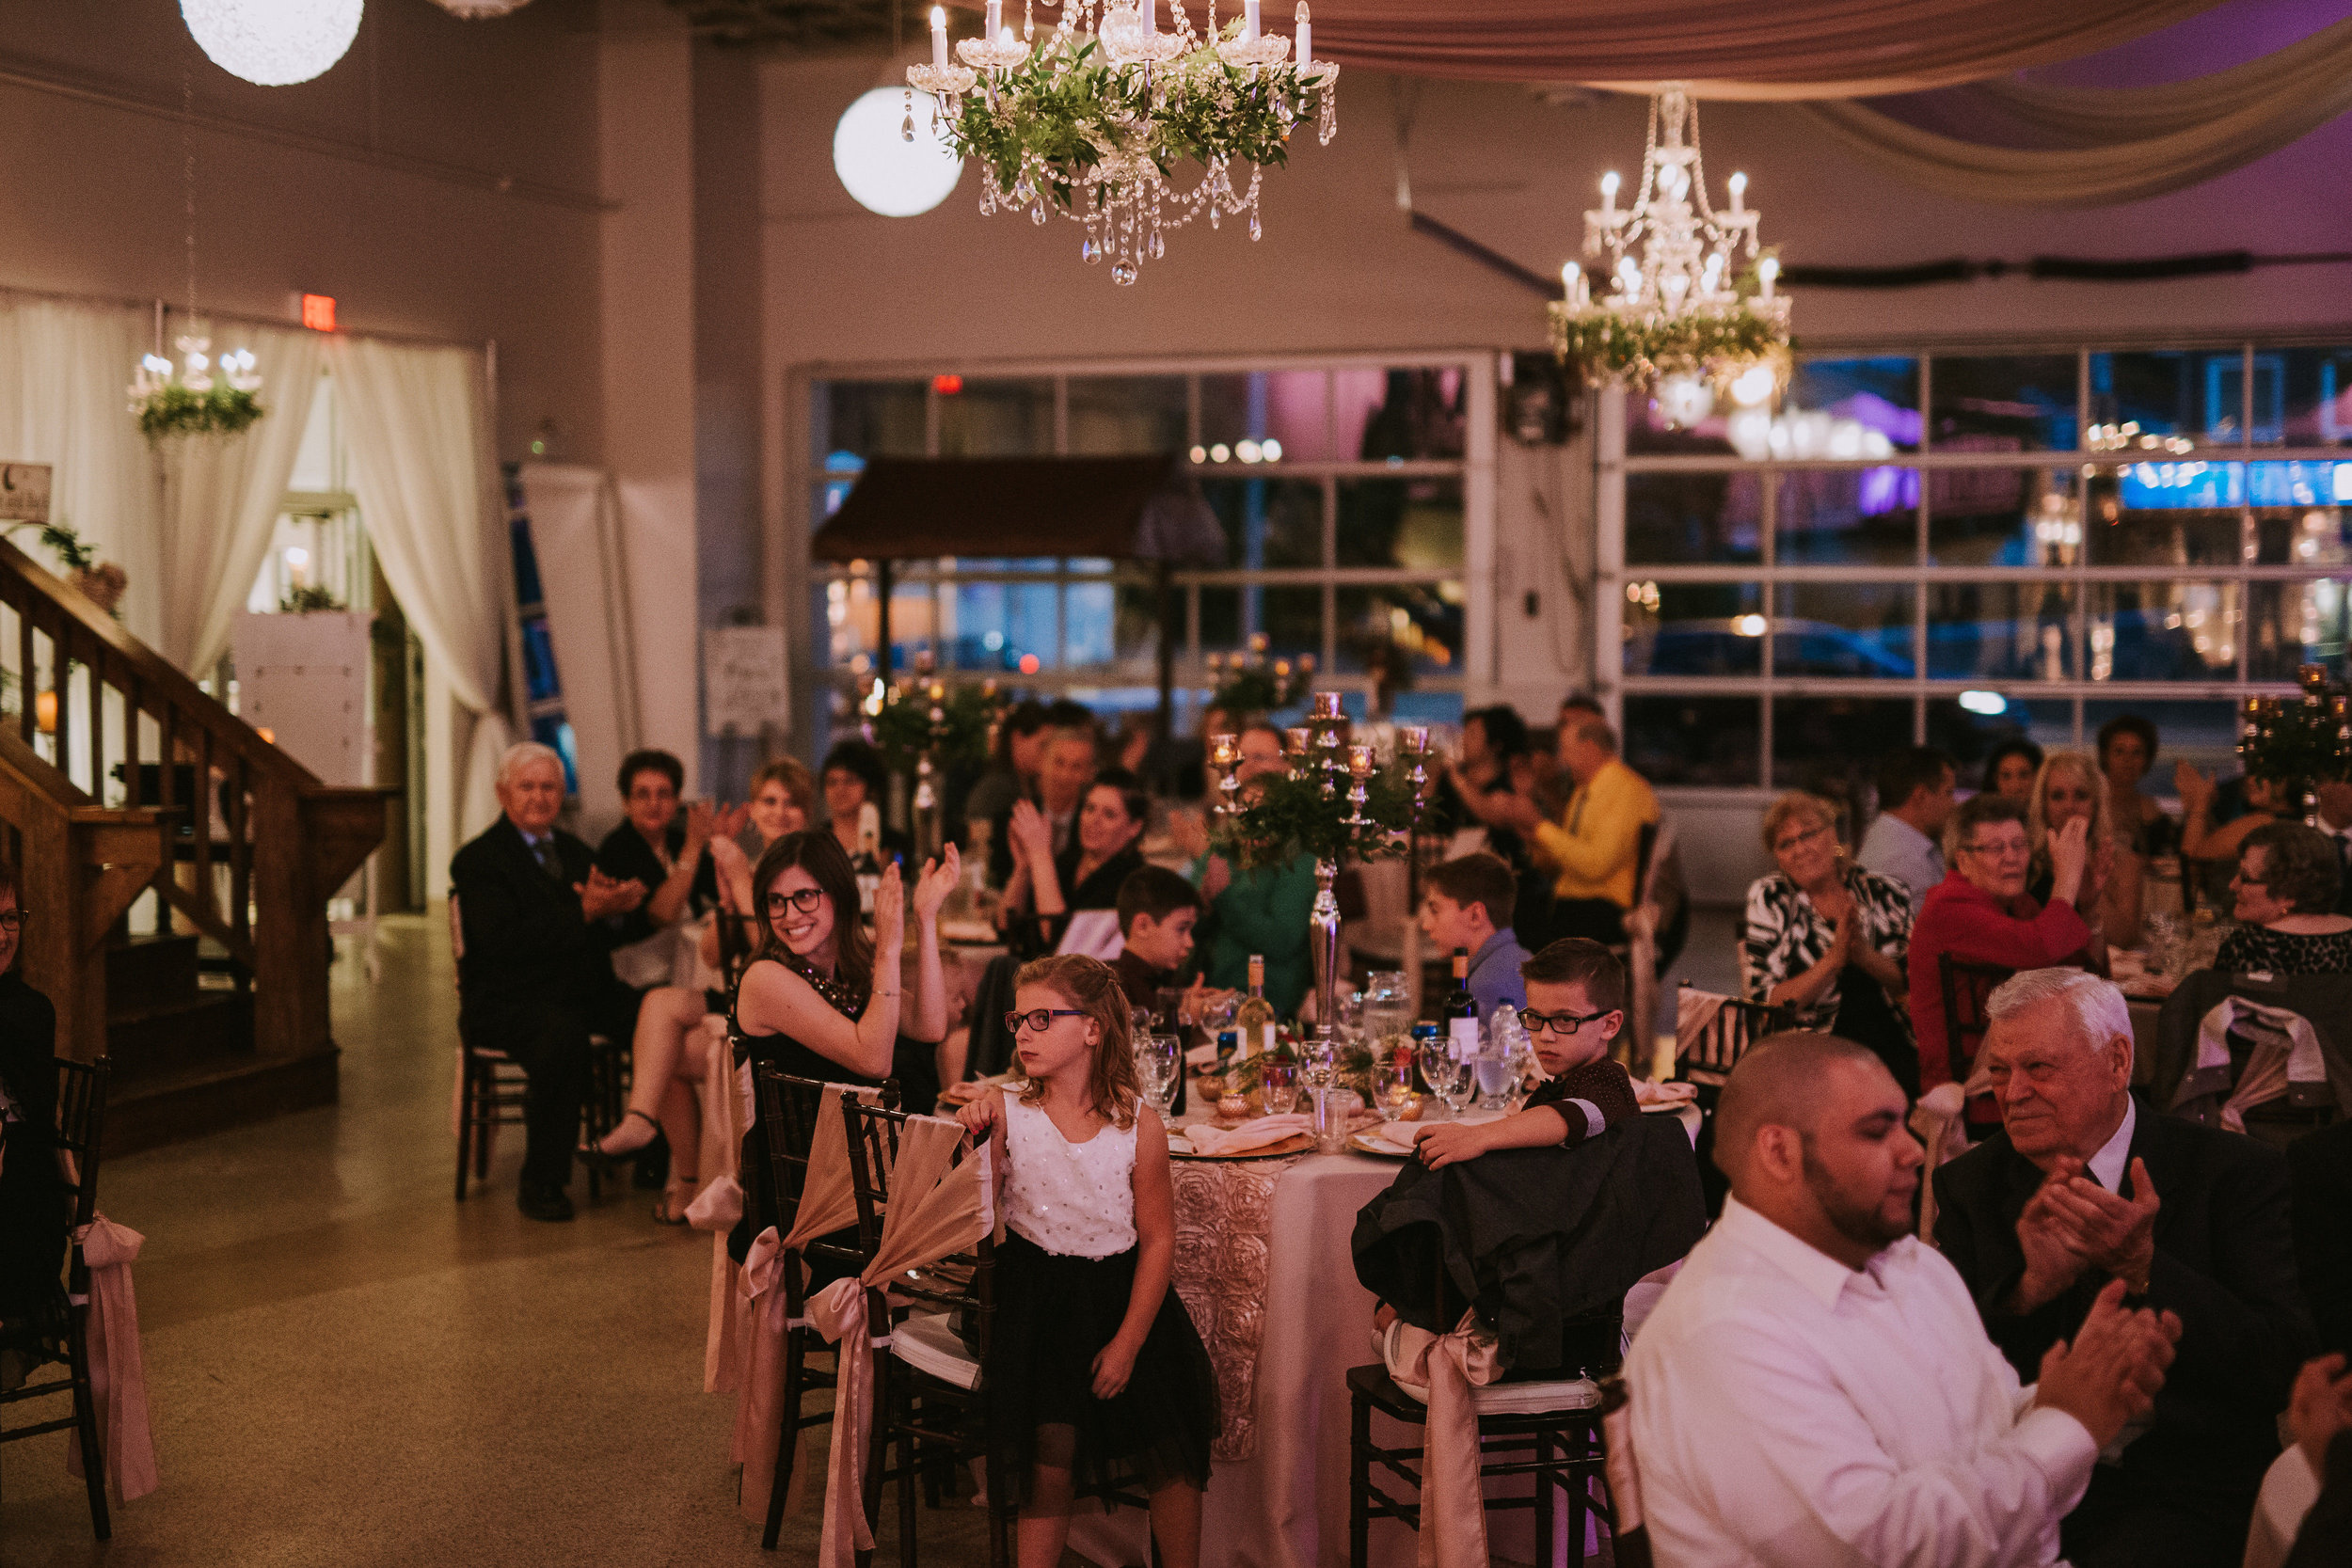 20171007_ShannonMayPhotography_MARRIED_542.jpg